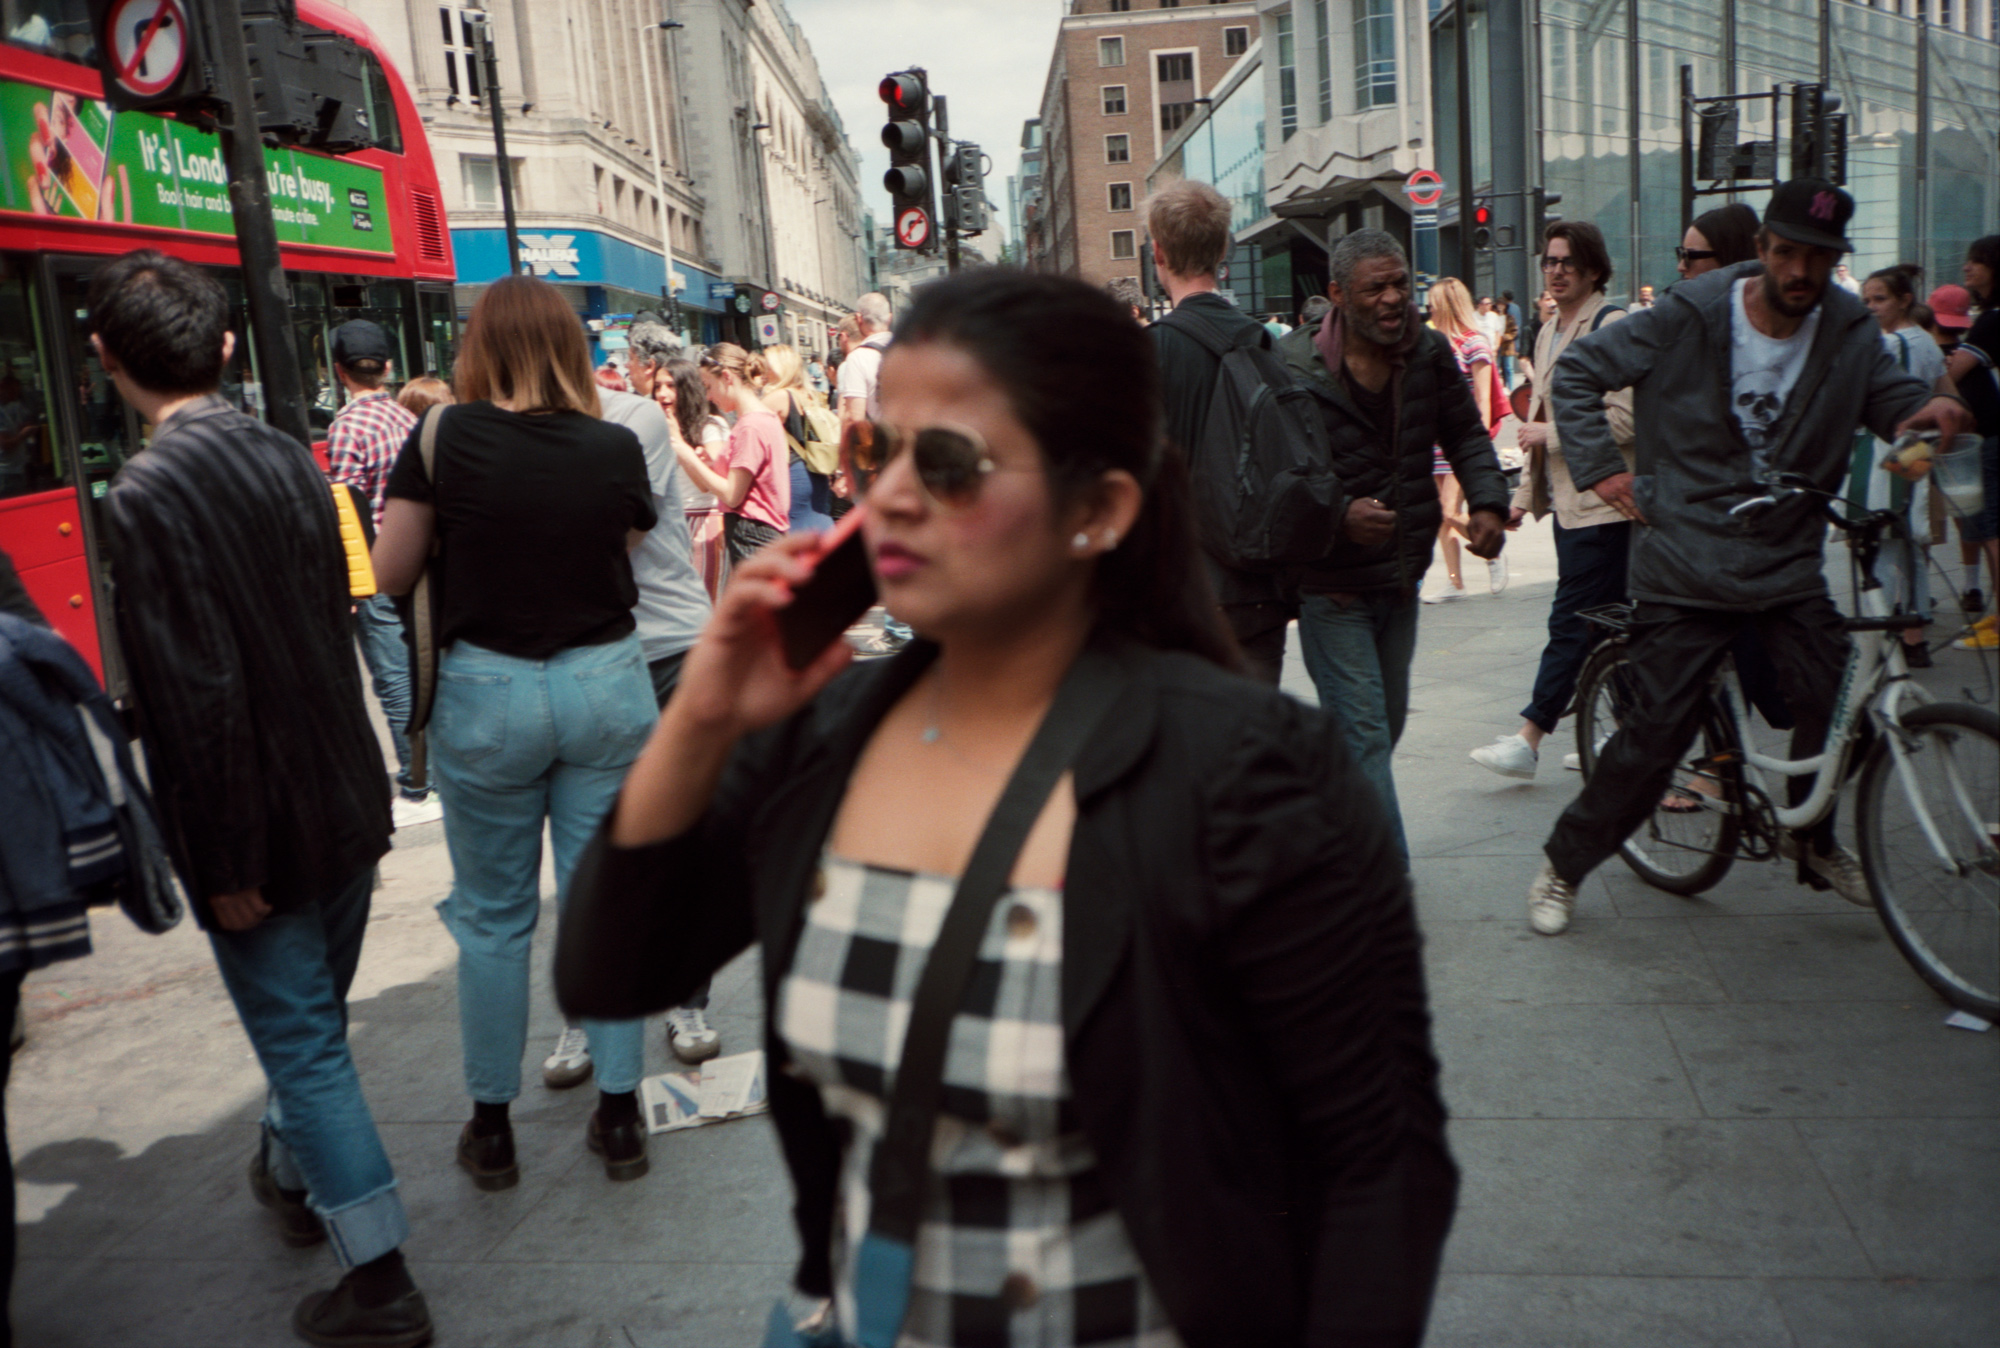 Suspected Muggings, Rush hour London, Observations Series, Photography by ioannis Koussertari